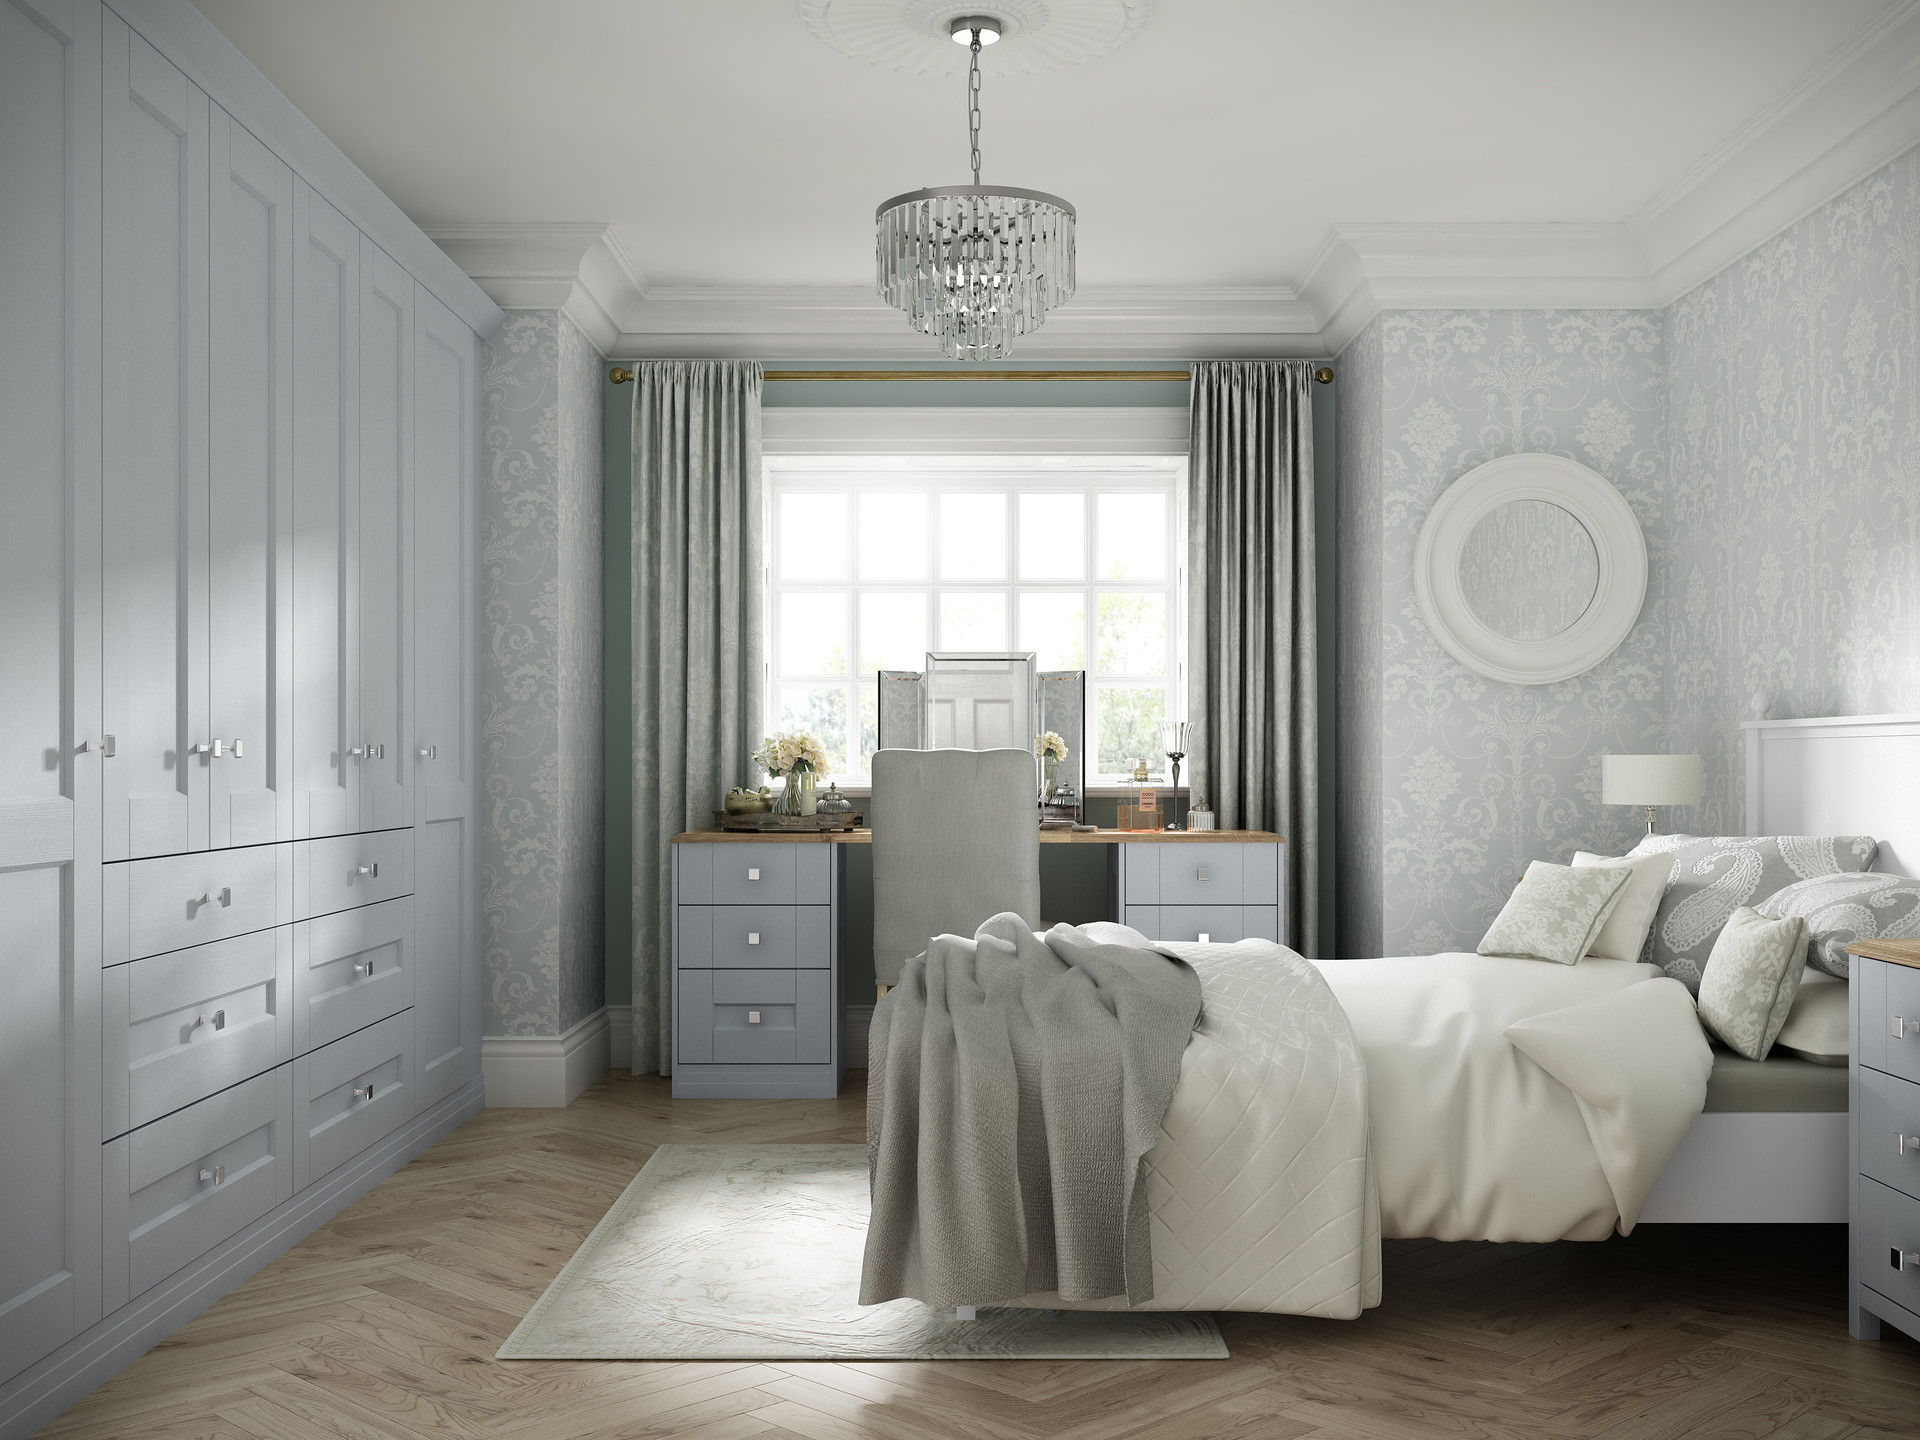 Peachy Artstation Laura Ashley Bedroom Furniture Danny Costello Download Free Architecture Designs Scobabritishbridgeorg